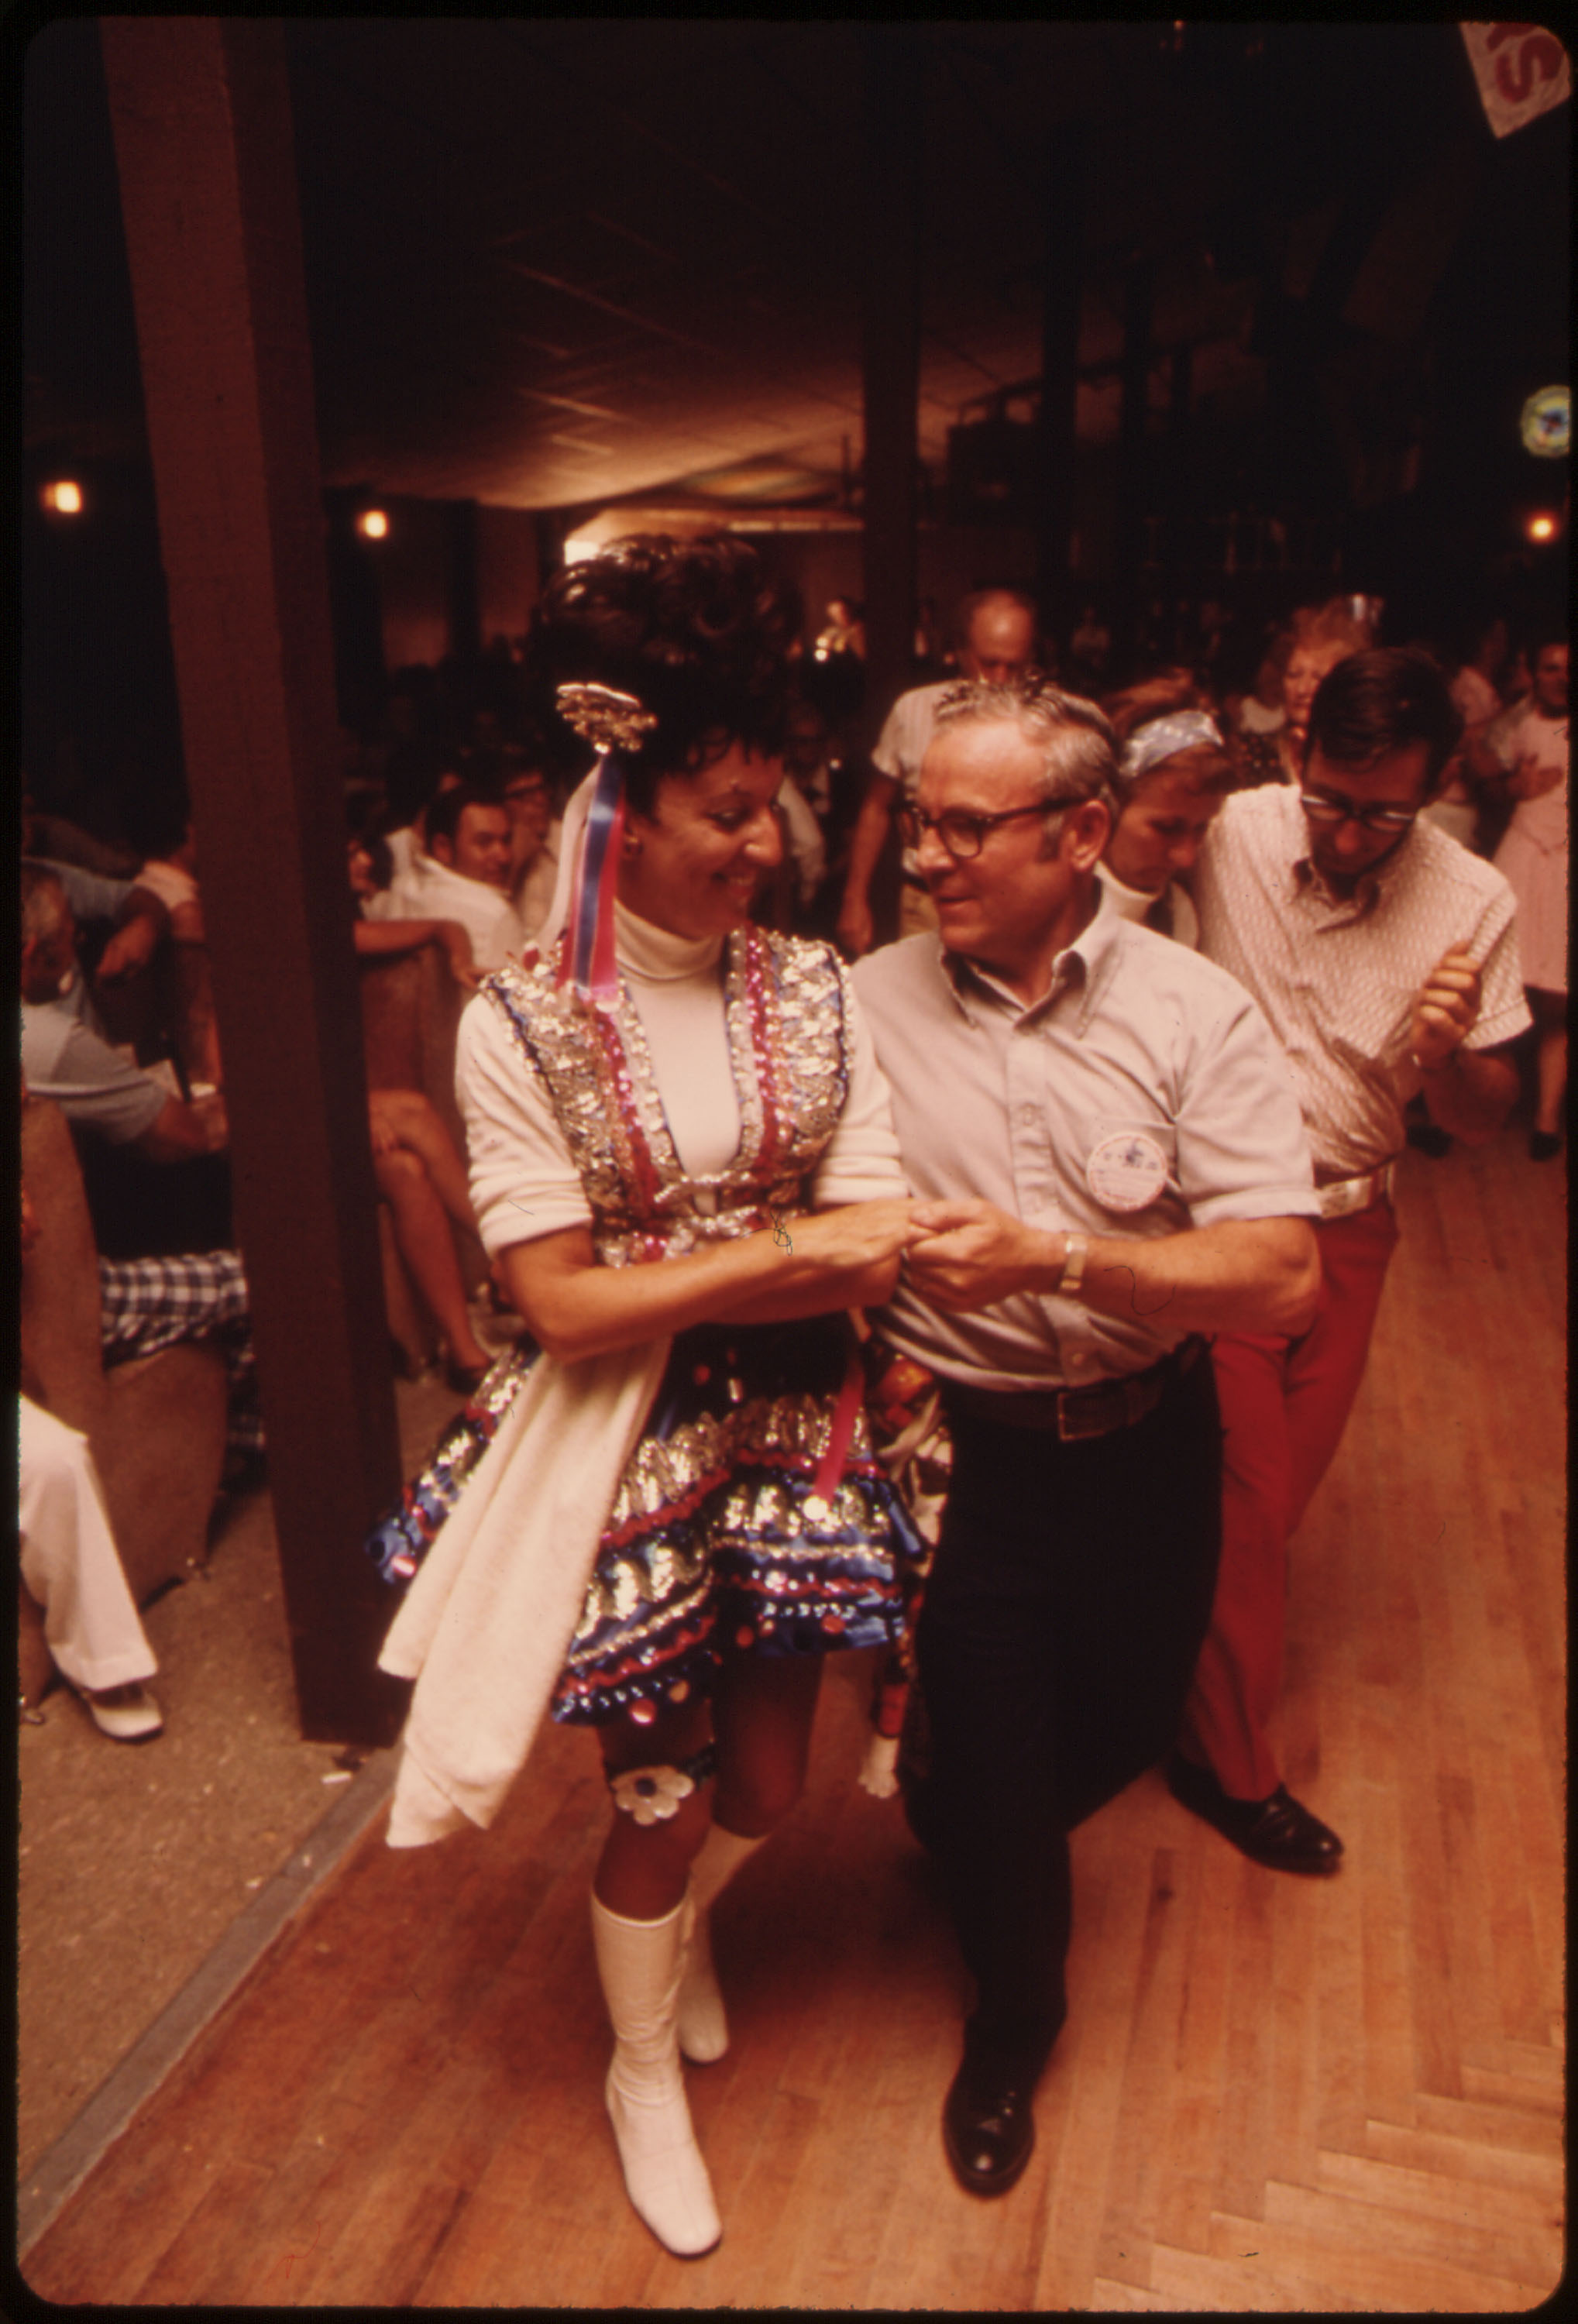 Caption: Polka dancers: Polka dancing during Polka Days at the Gibbon Ballroom in Gibbon, Minnesota, circa 1975, Credit: Flip Schulke / U.S. National Archives